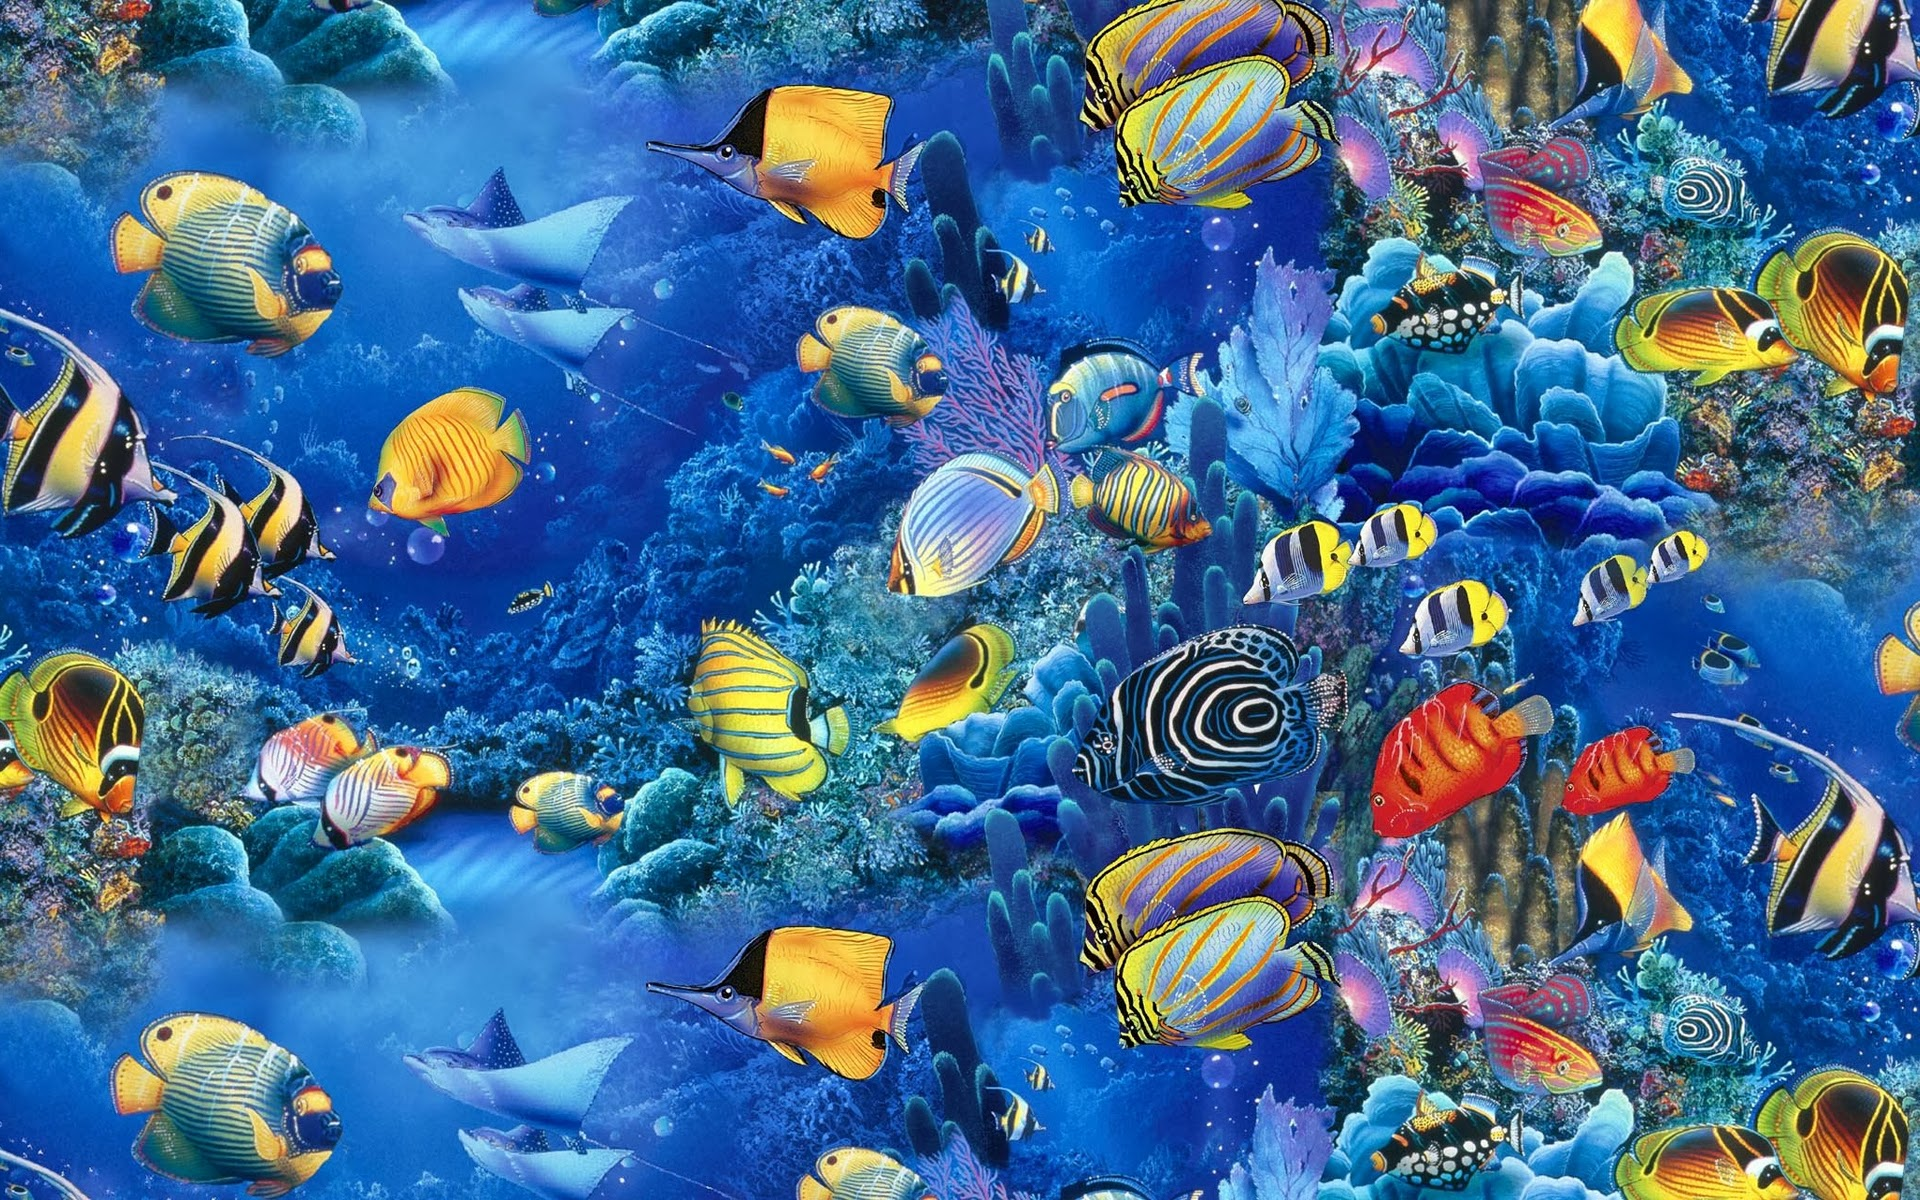 blue fish wallpaper backgrounds - photo #44